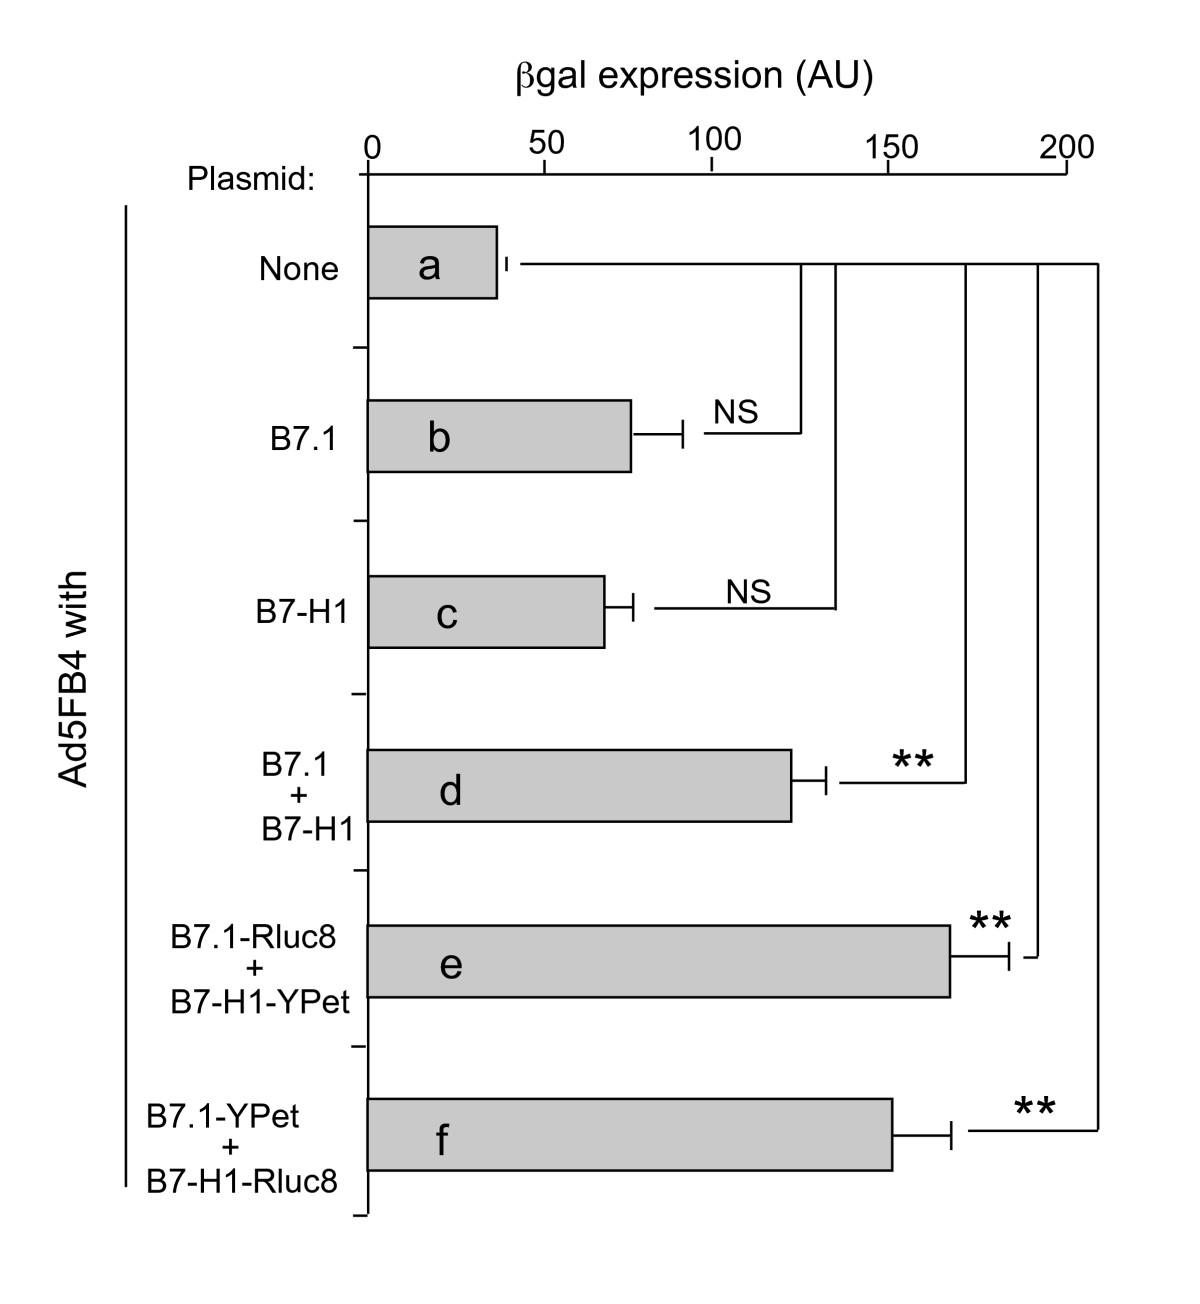 http://static-content.springer.com/image/art%3A10.1186%2F1476-4598-10-105/MediaObjects/12943_2011_Article_940_Fig6_HTML.jpg